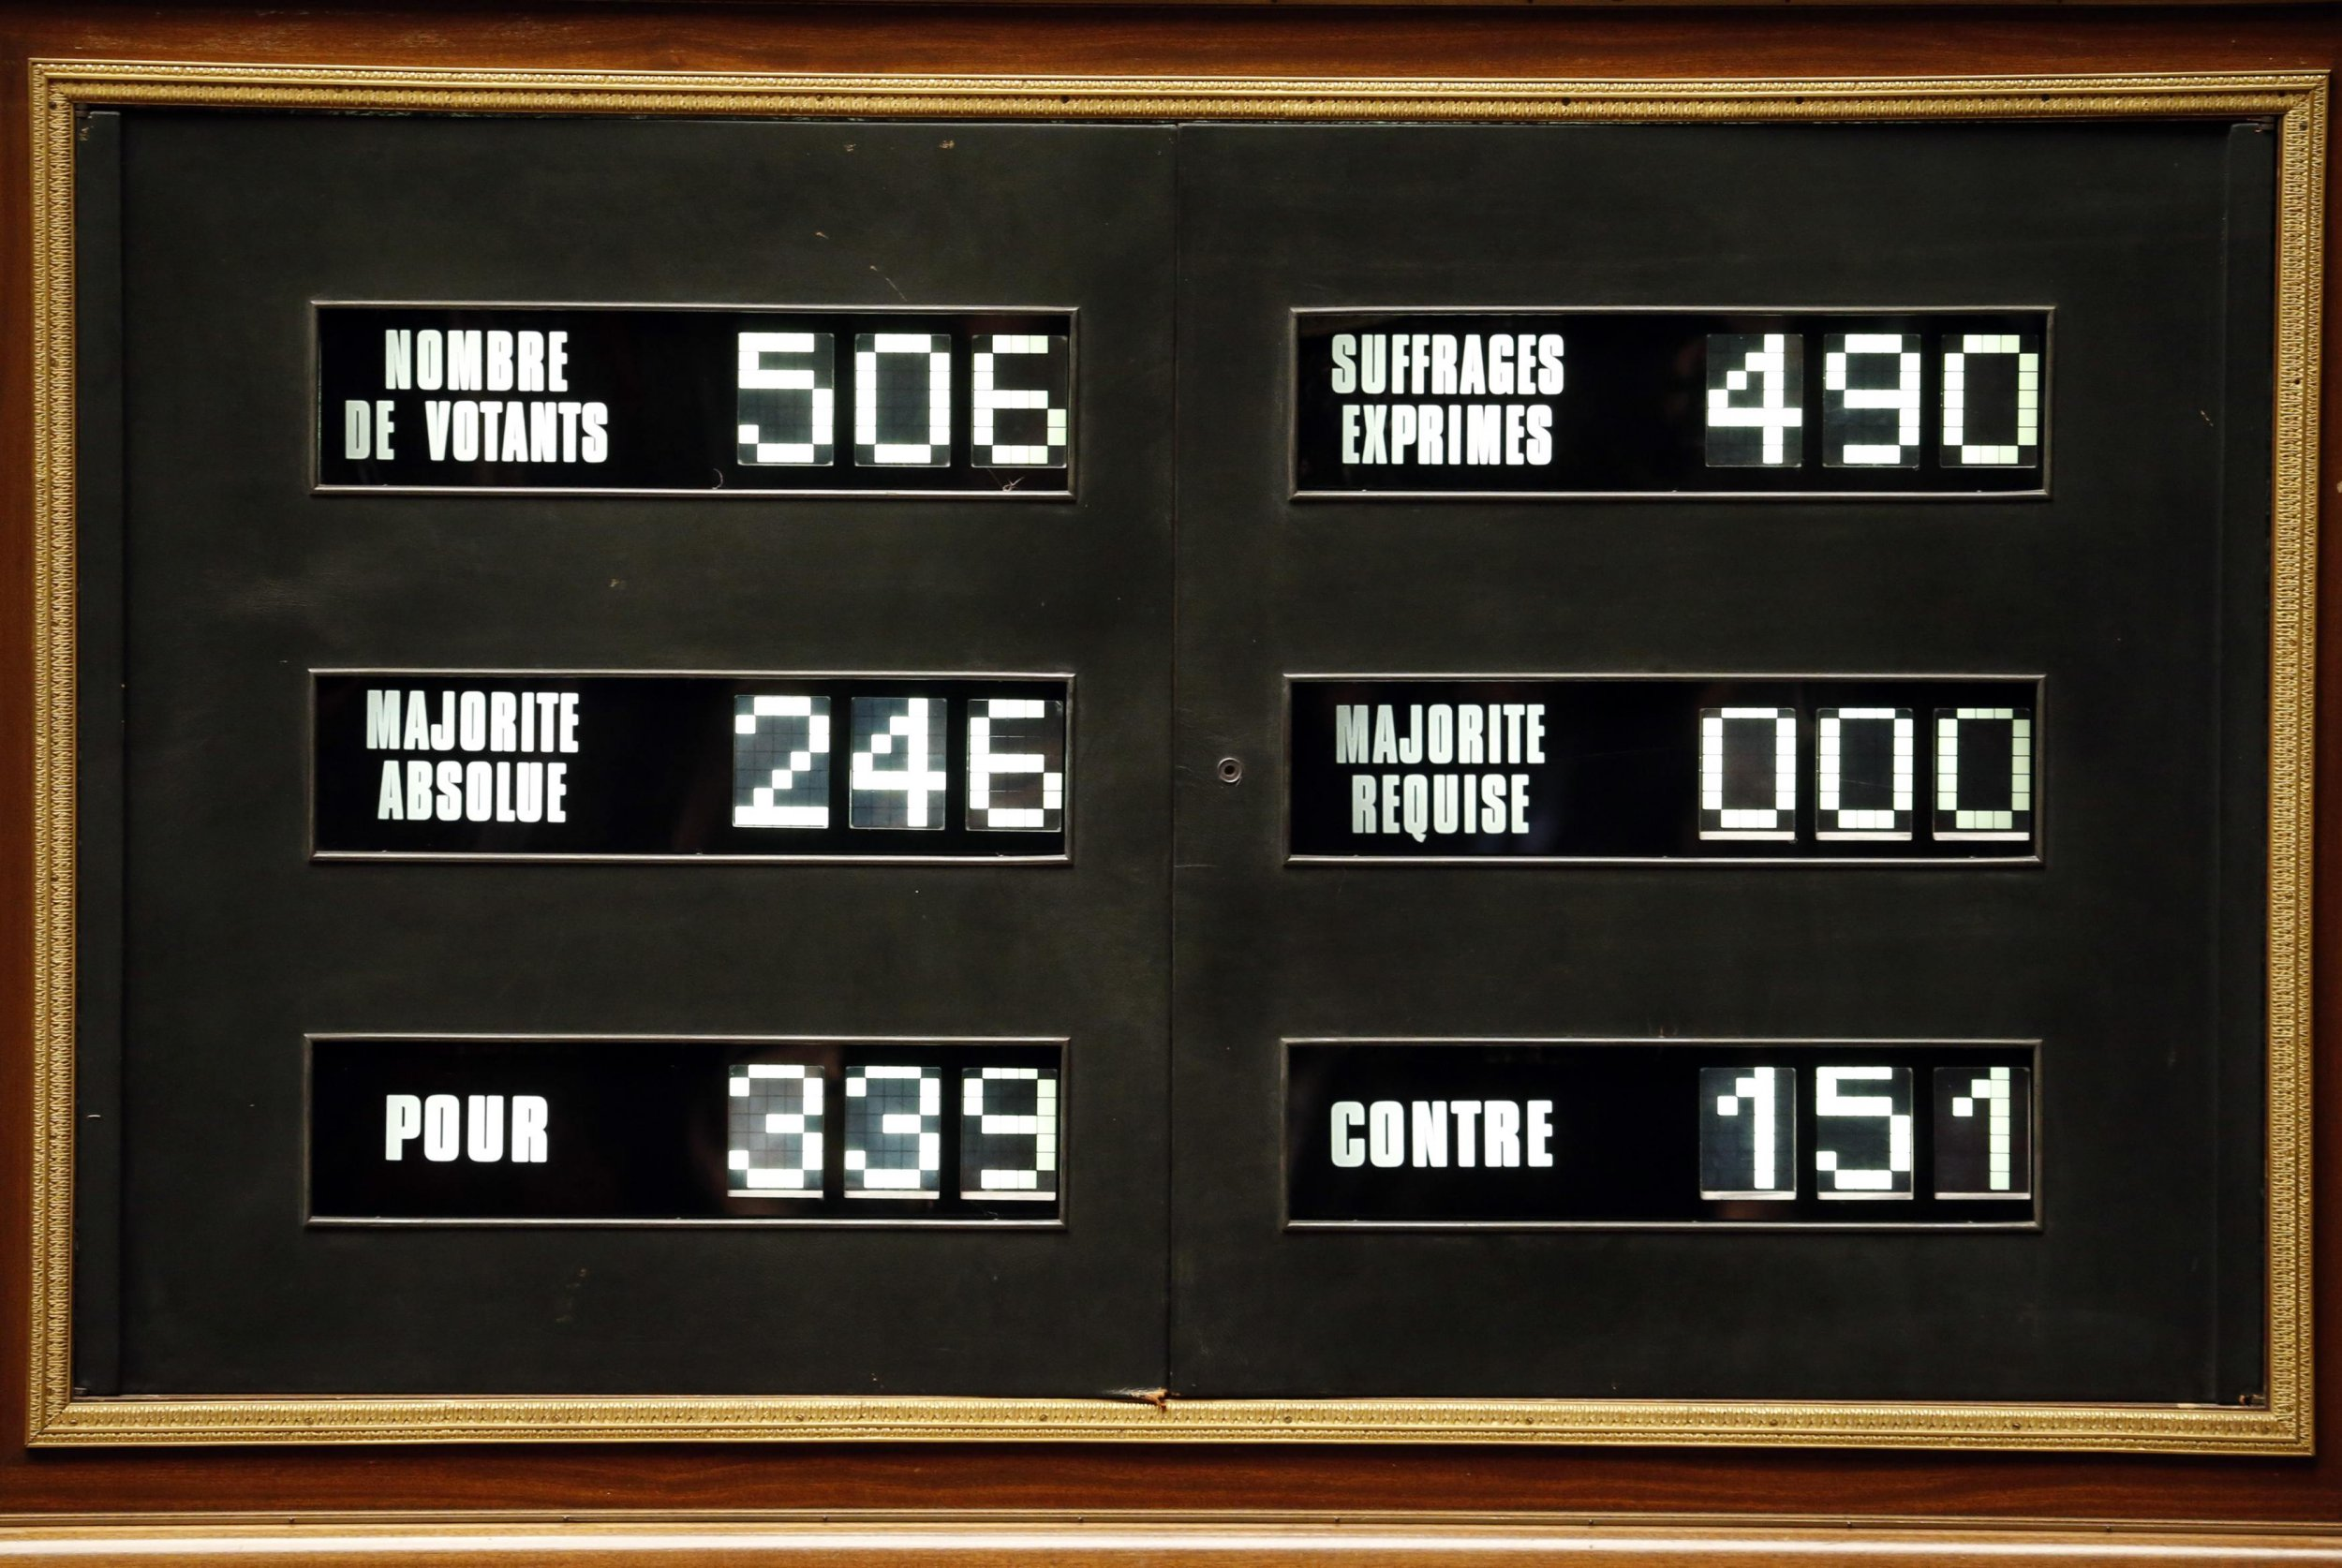 france votes for Palestinian state